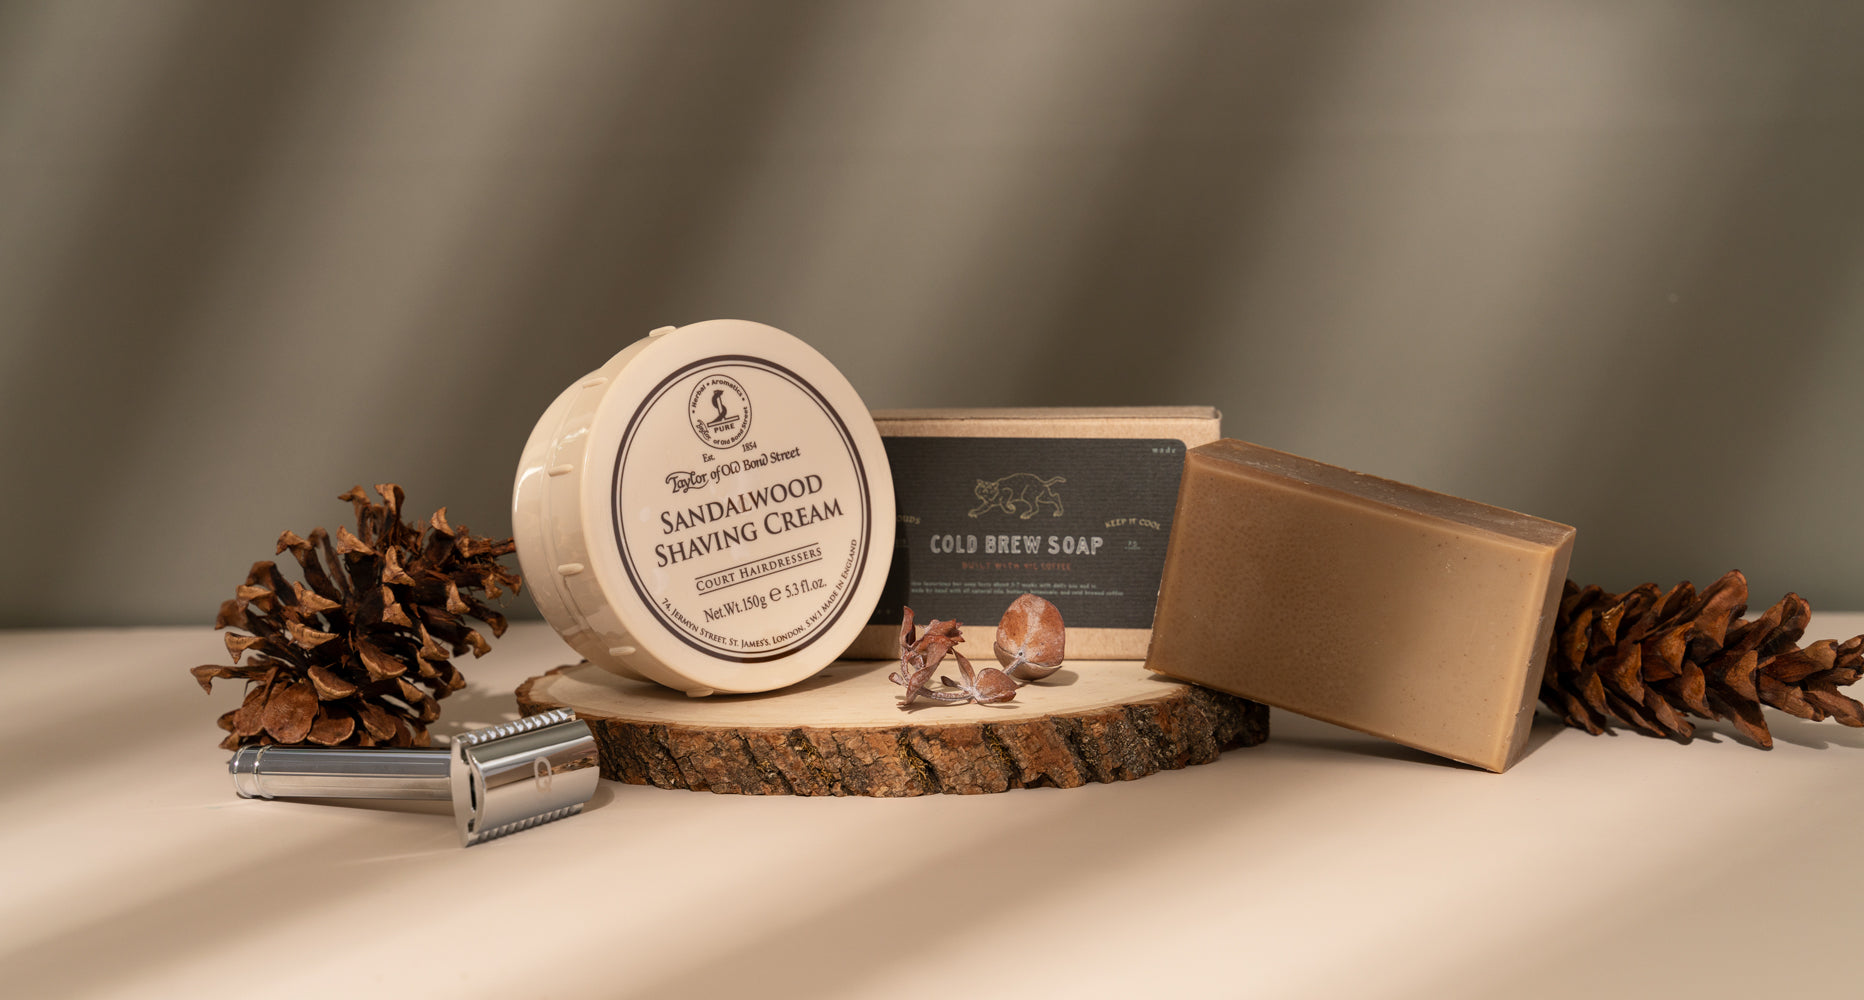 Father's Day Gifts - Grooming Goods He'll Love